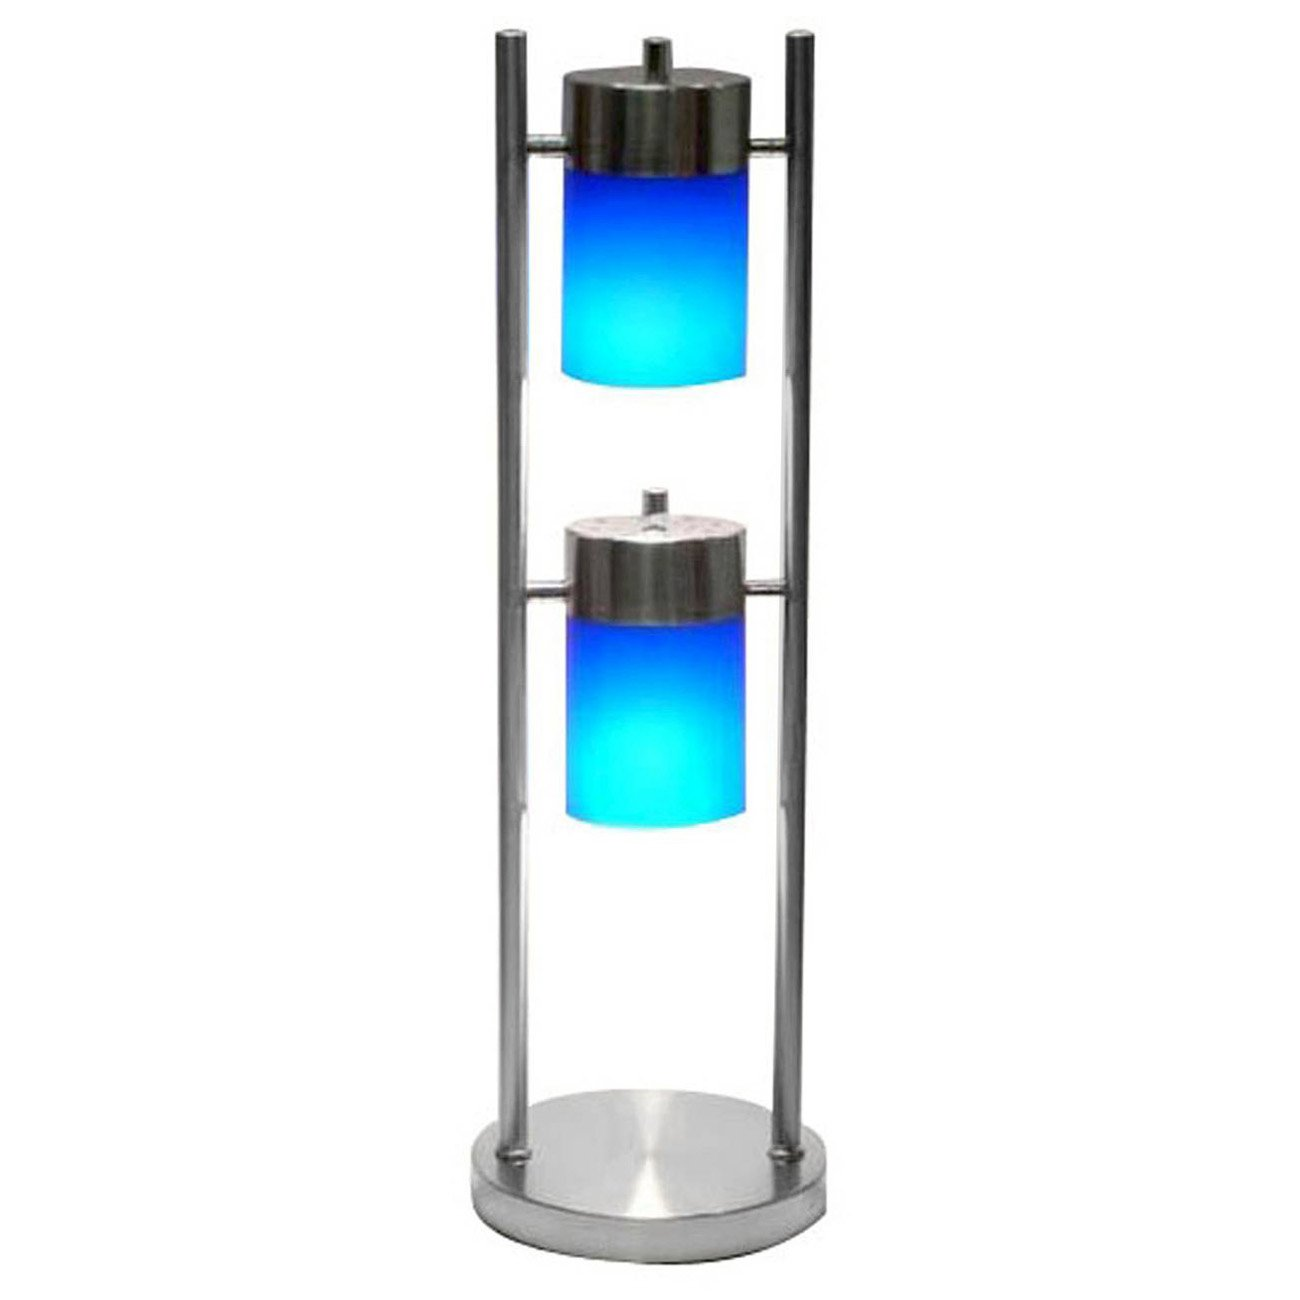 Hongville HV-TLAMP-3031T-BL 2 Light Angle Adjustable Contemporary Acrylic Shades Table Lamp, Frosted Blue